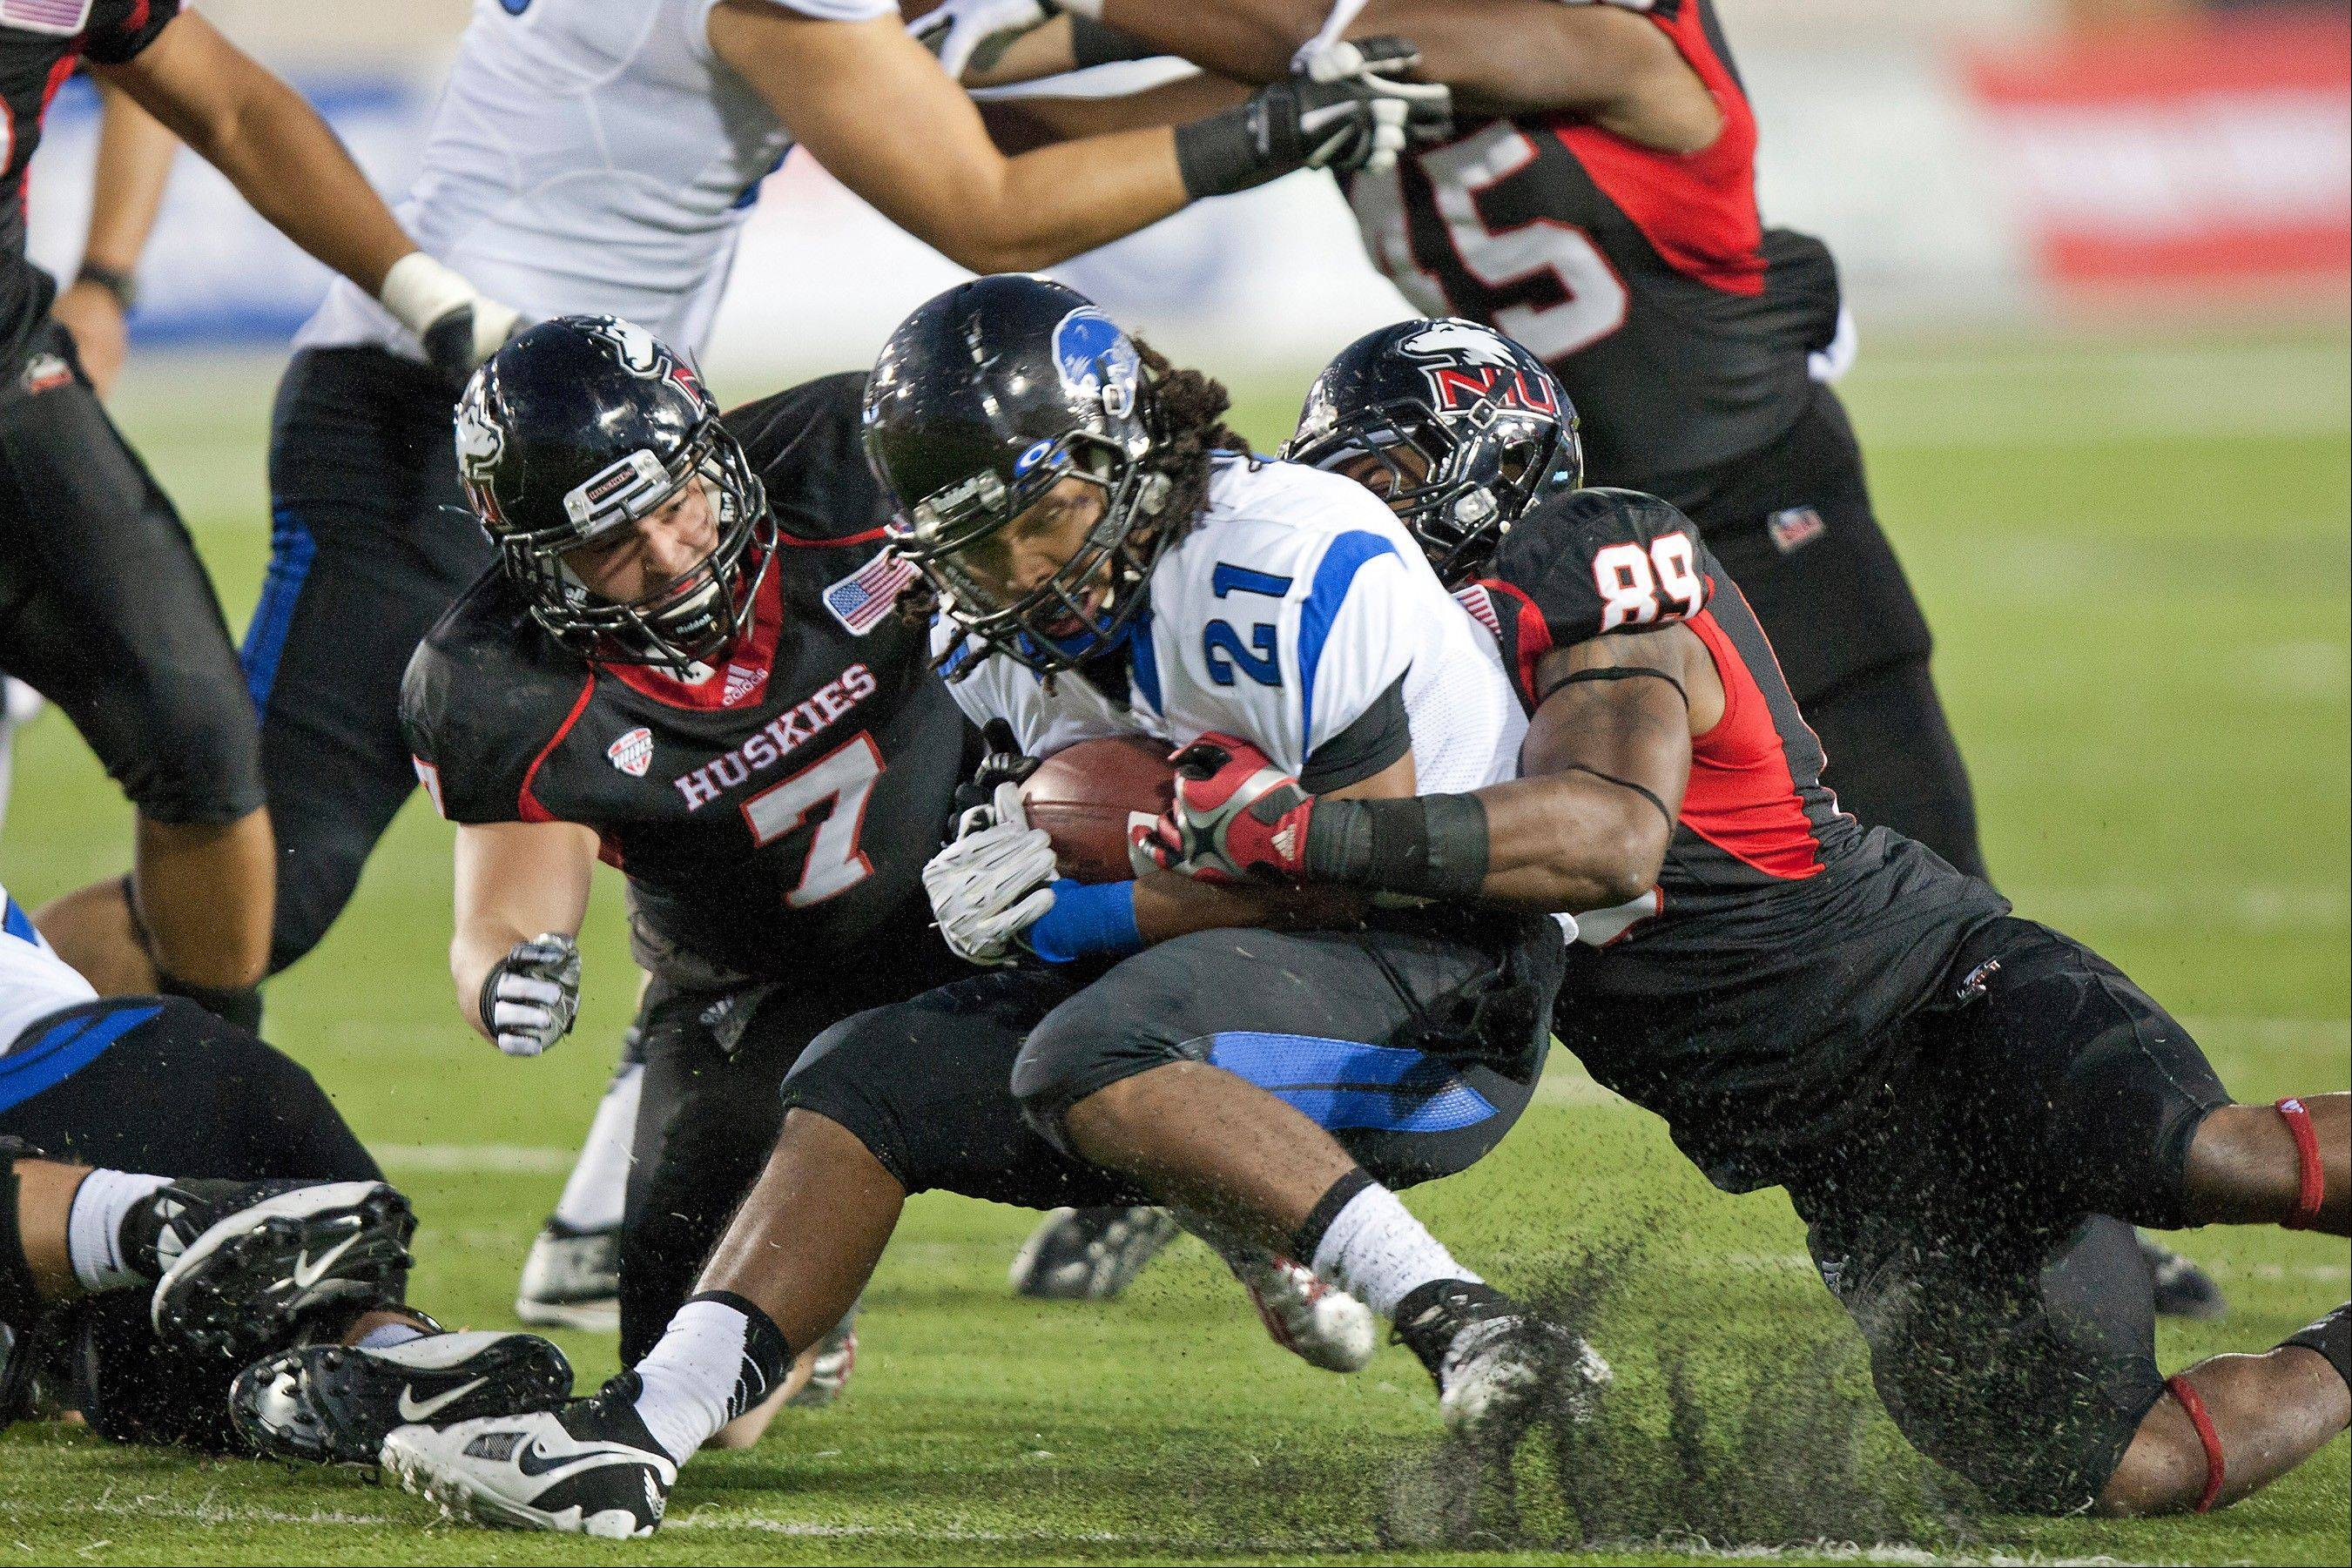 Michael Santacaternina (7) and Stephen O'Neal (89) of Northern Illinois helped the Huskies come back to defeat Eastern Illinois on Saturday and run their Huskie Stadium winning streak to 22-0.